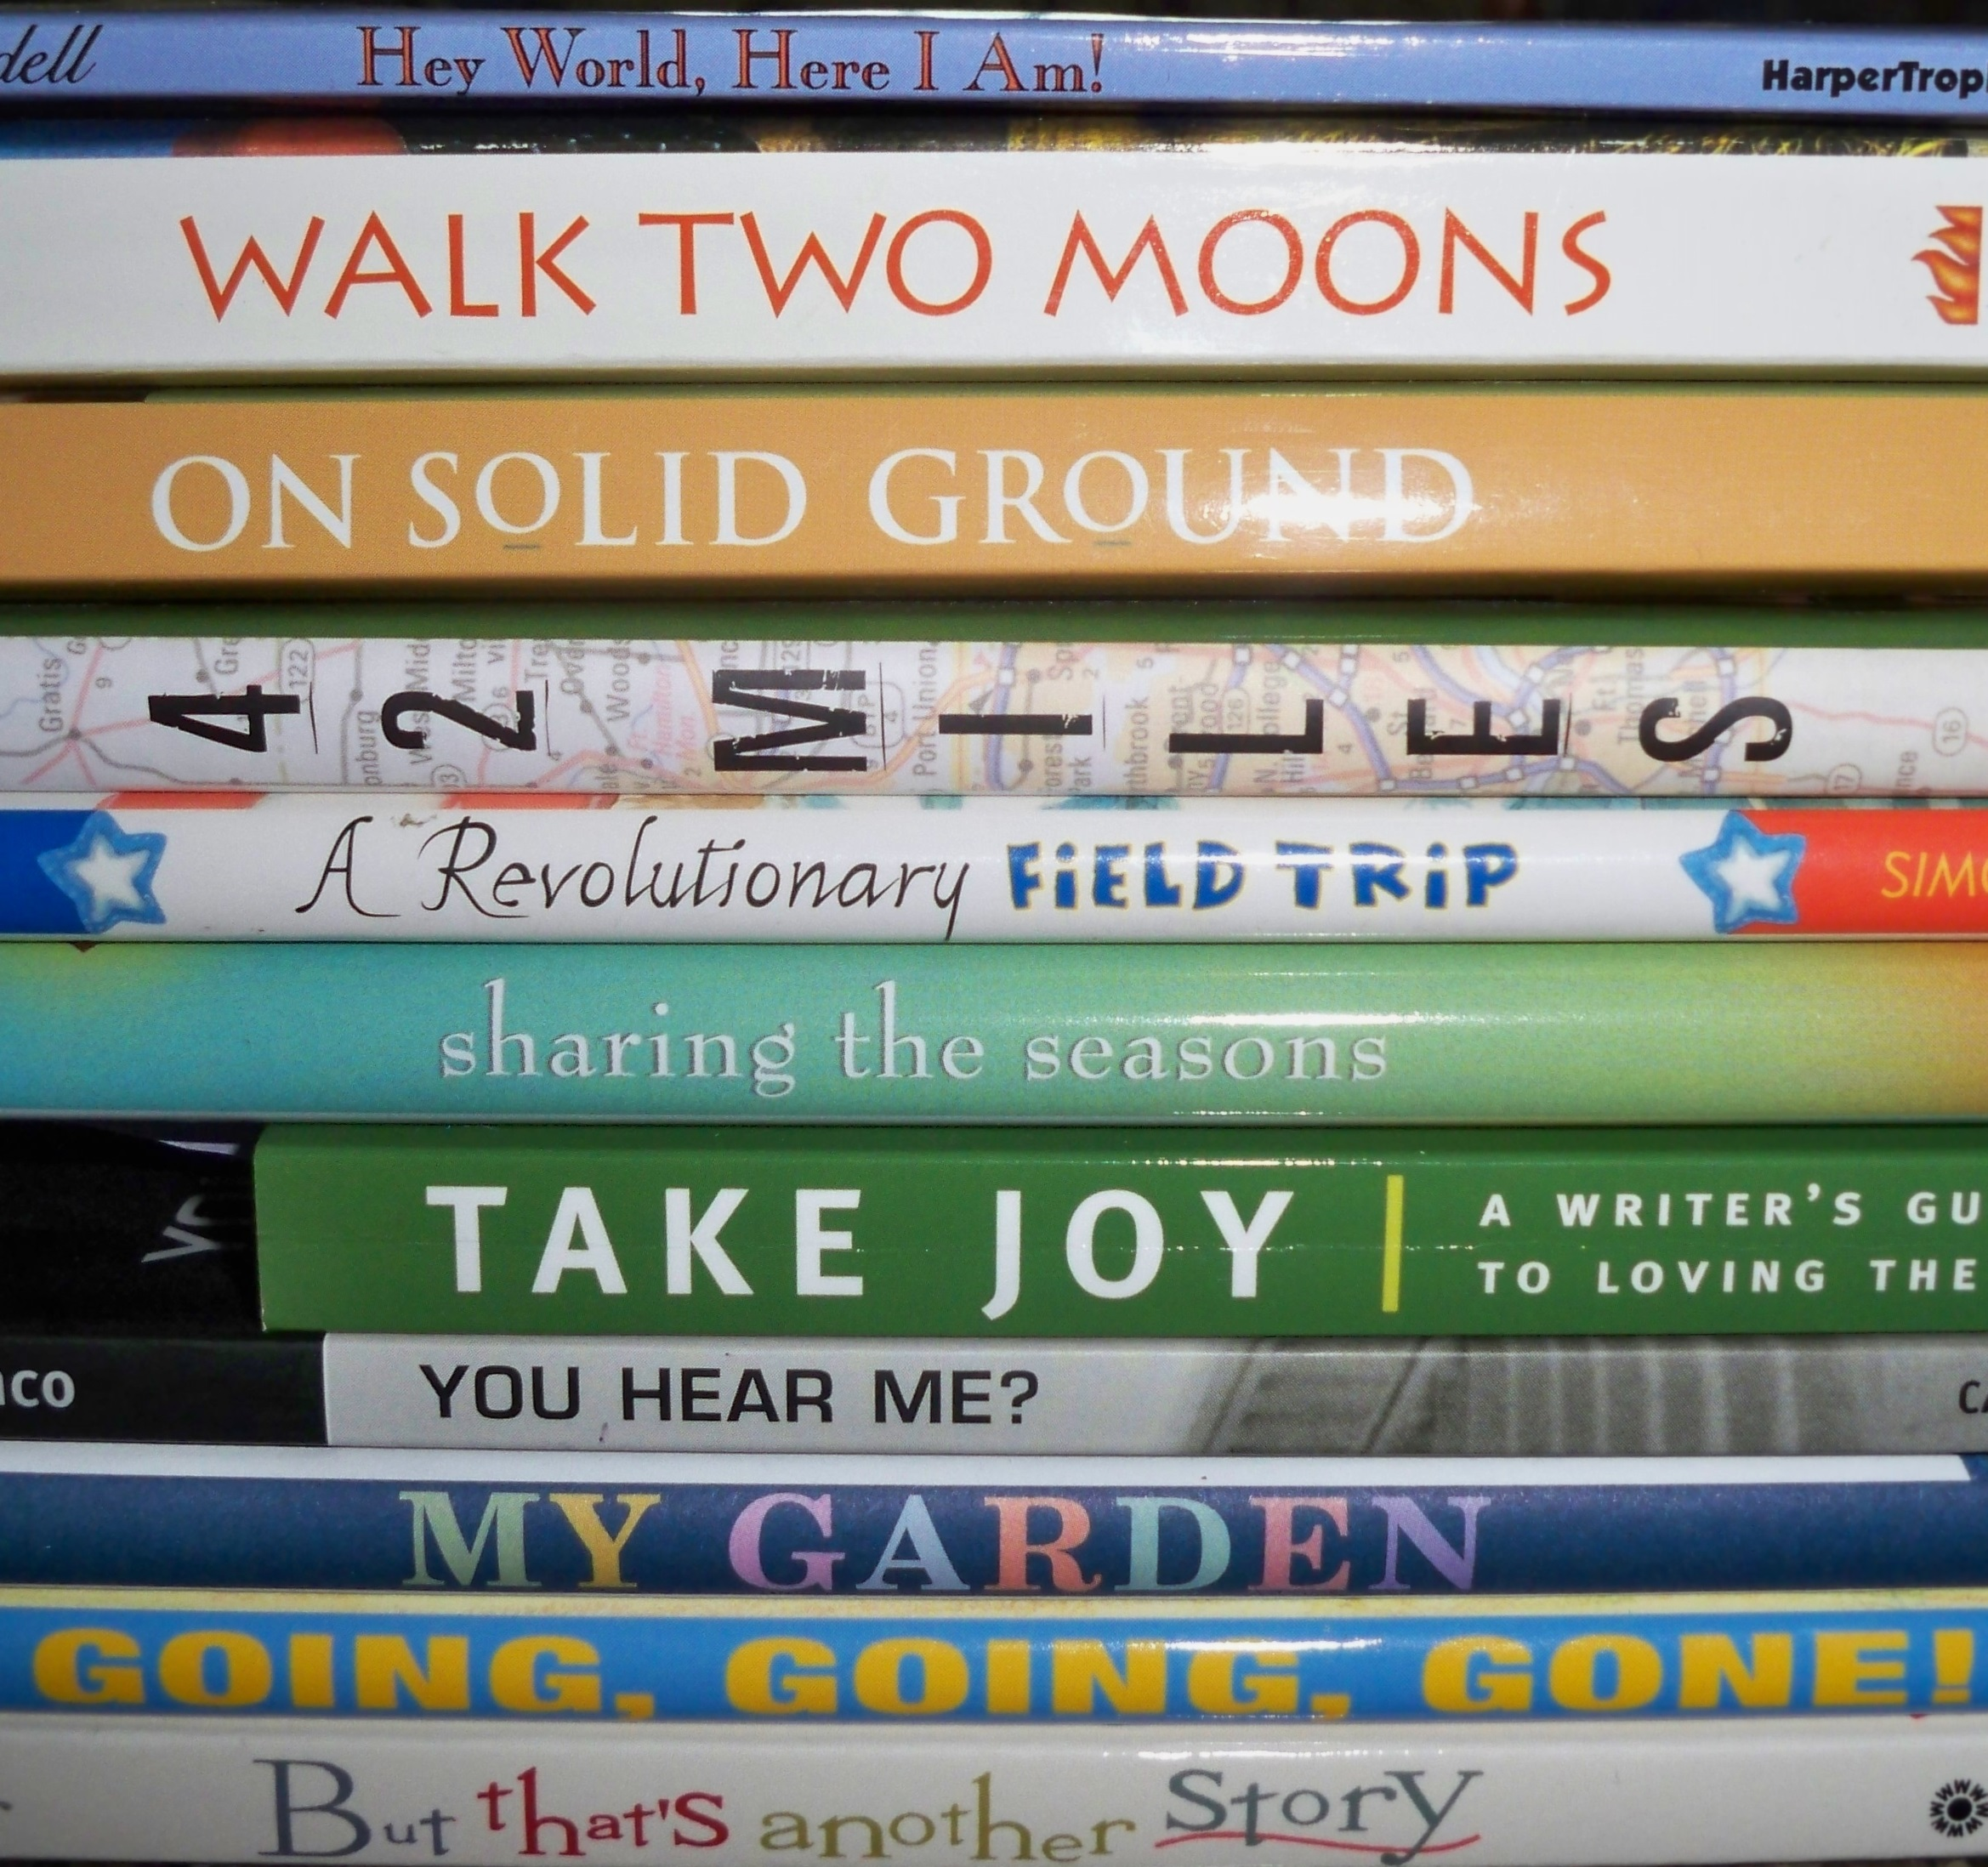 a book spine poem two writing teachers stacey s book spine poem hey world here i am walk two moons